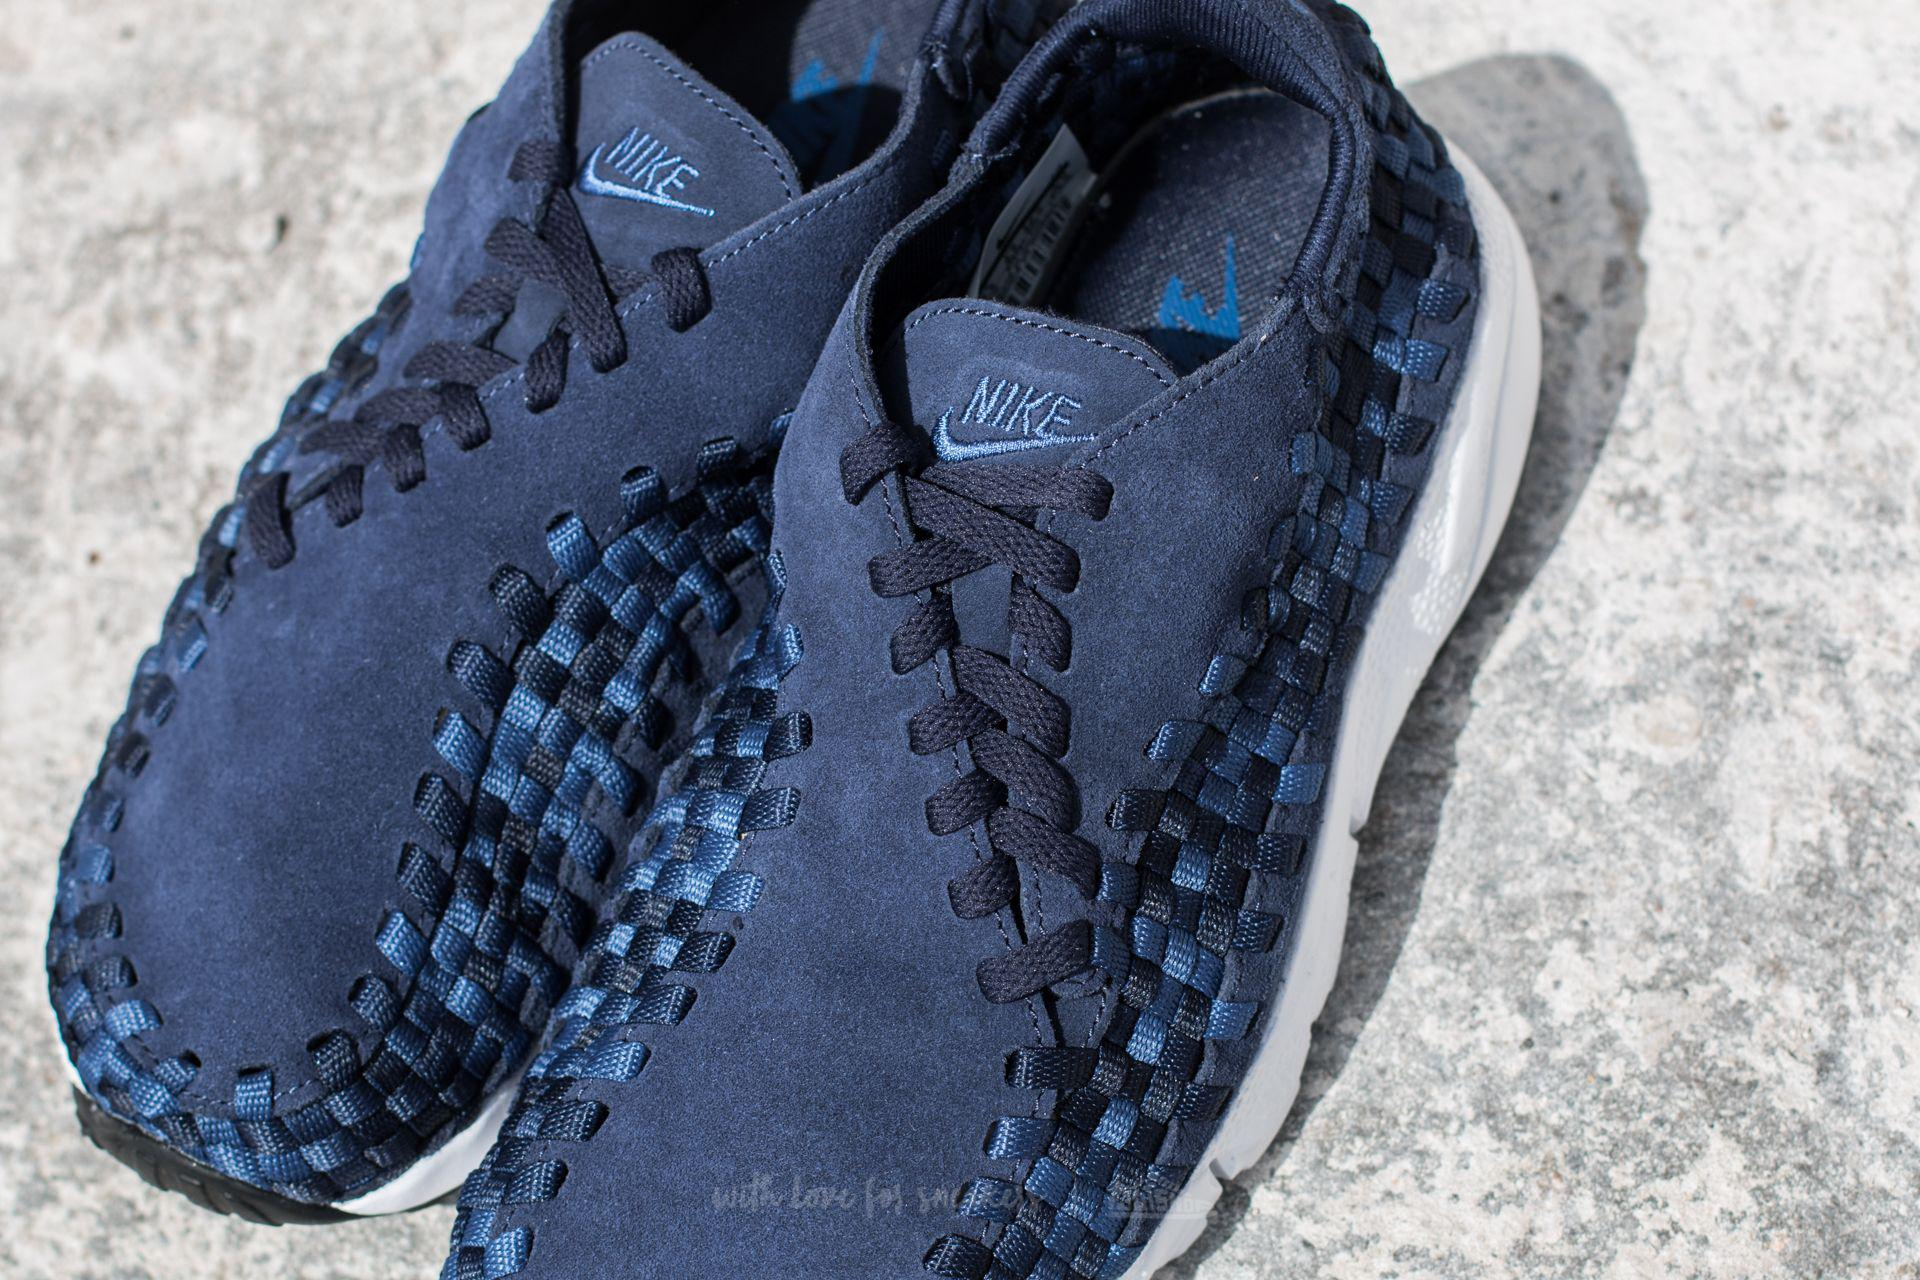 3911712a842 Lyst - Nike Air Footscape Woven Nm Binary Blue  Team Royal-black in ...